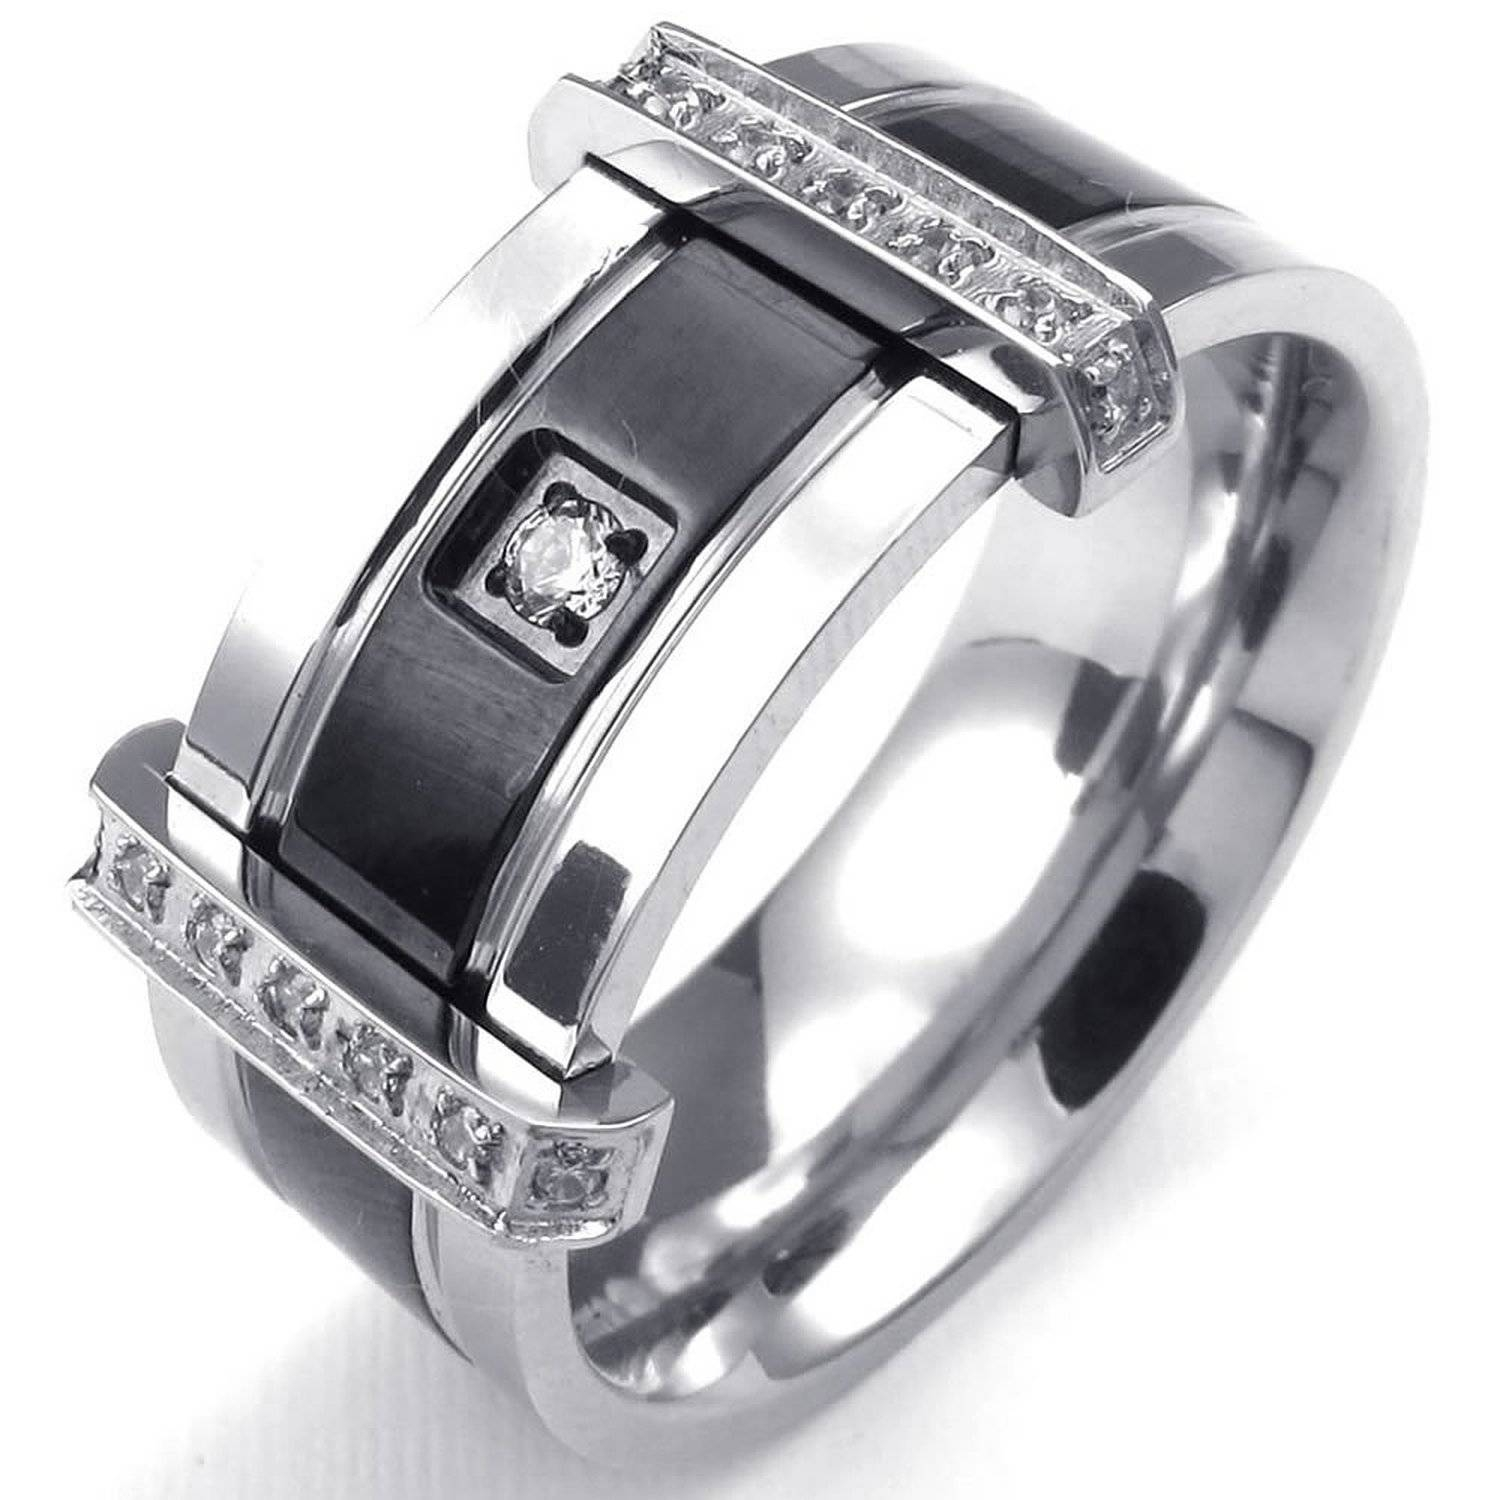 Mens Cubic Zirconia Diamond Rings | Wedding, Promise, Diamond Pertaining To Men's Cz Wedding Bands (View 8 of 15)